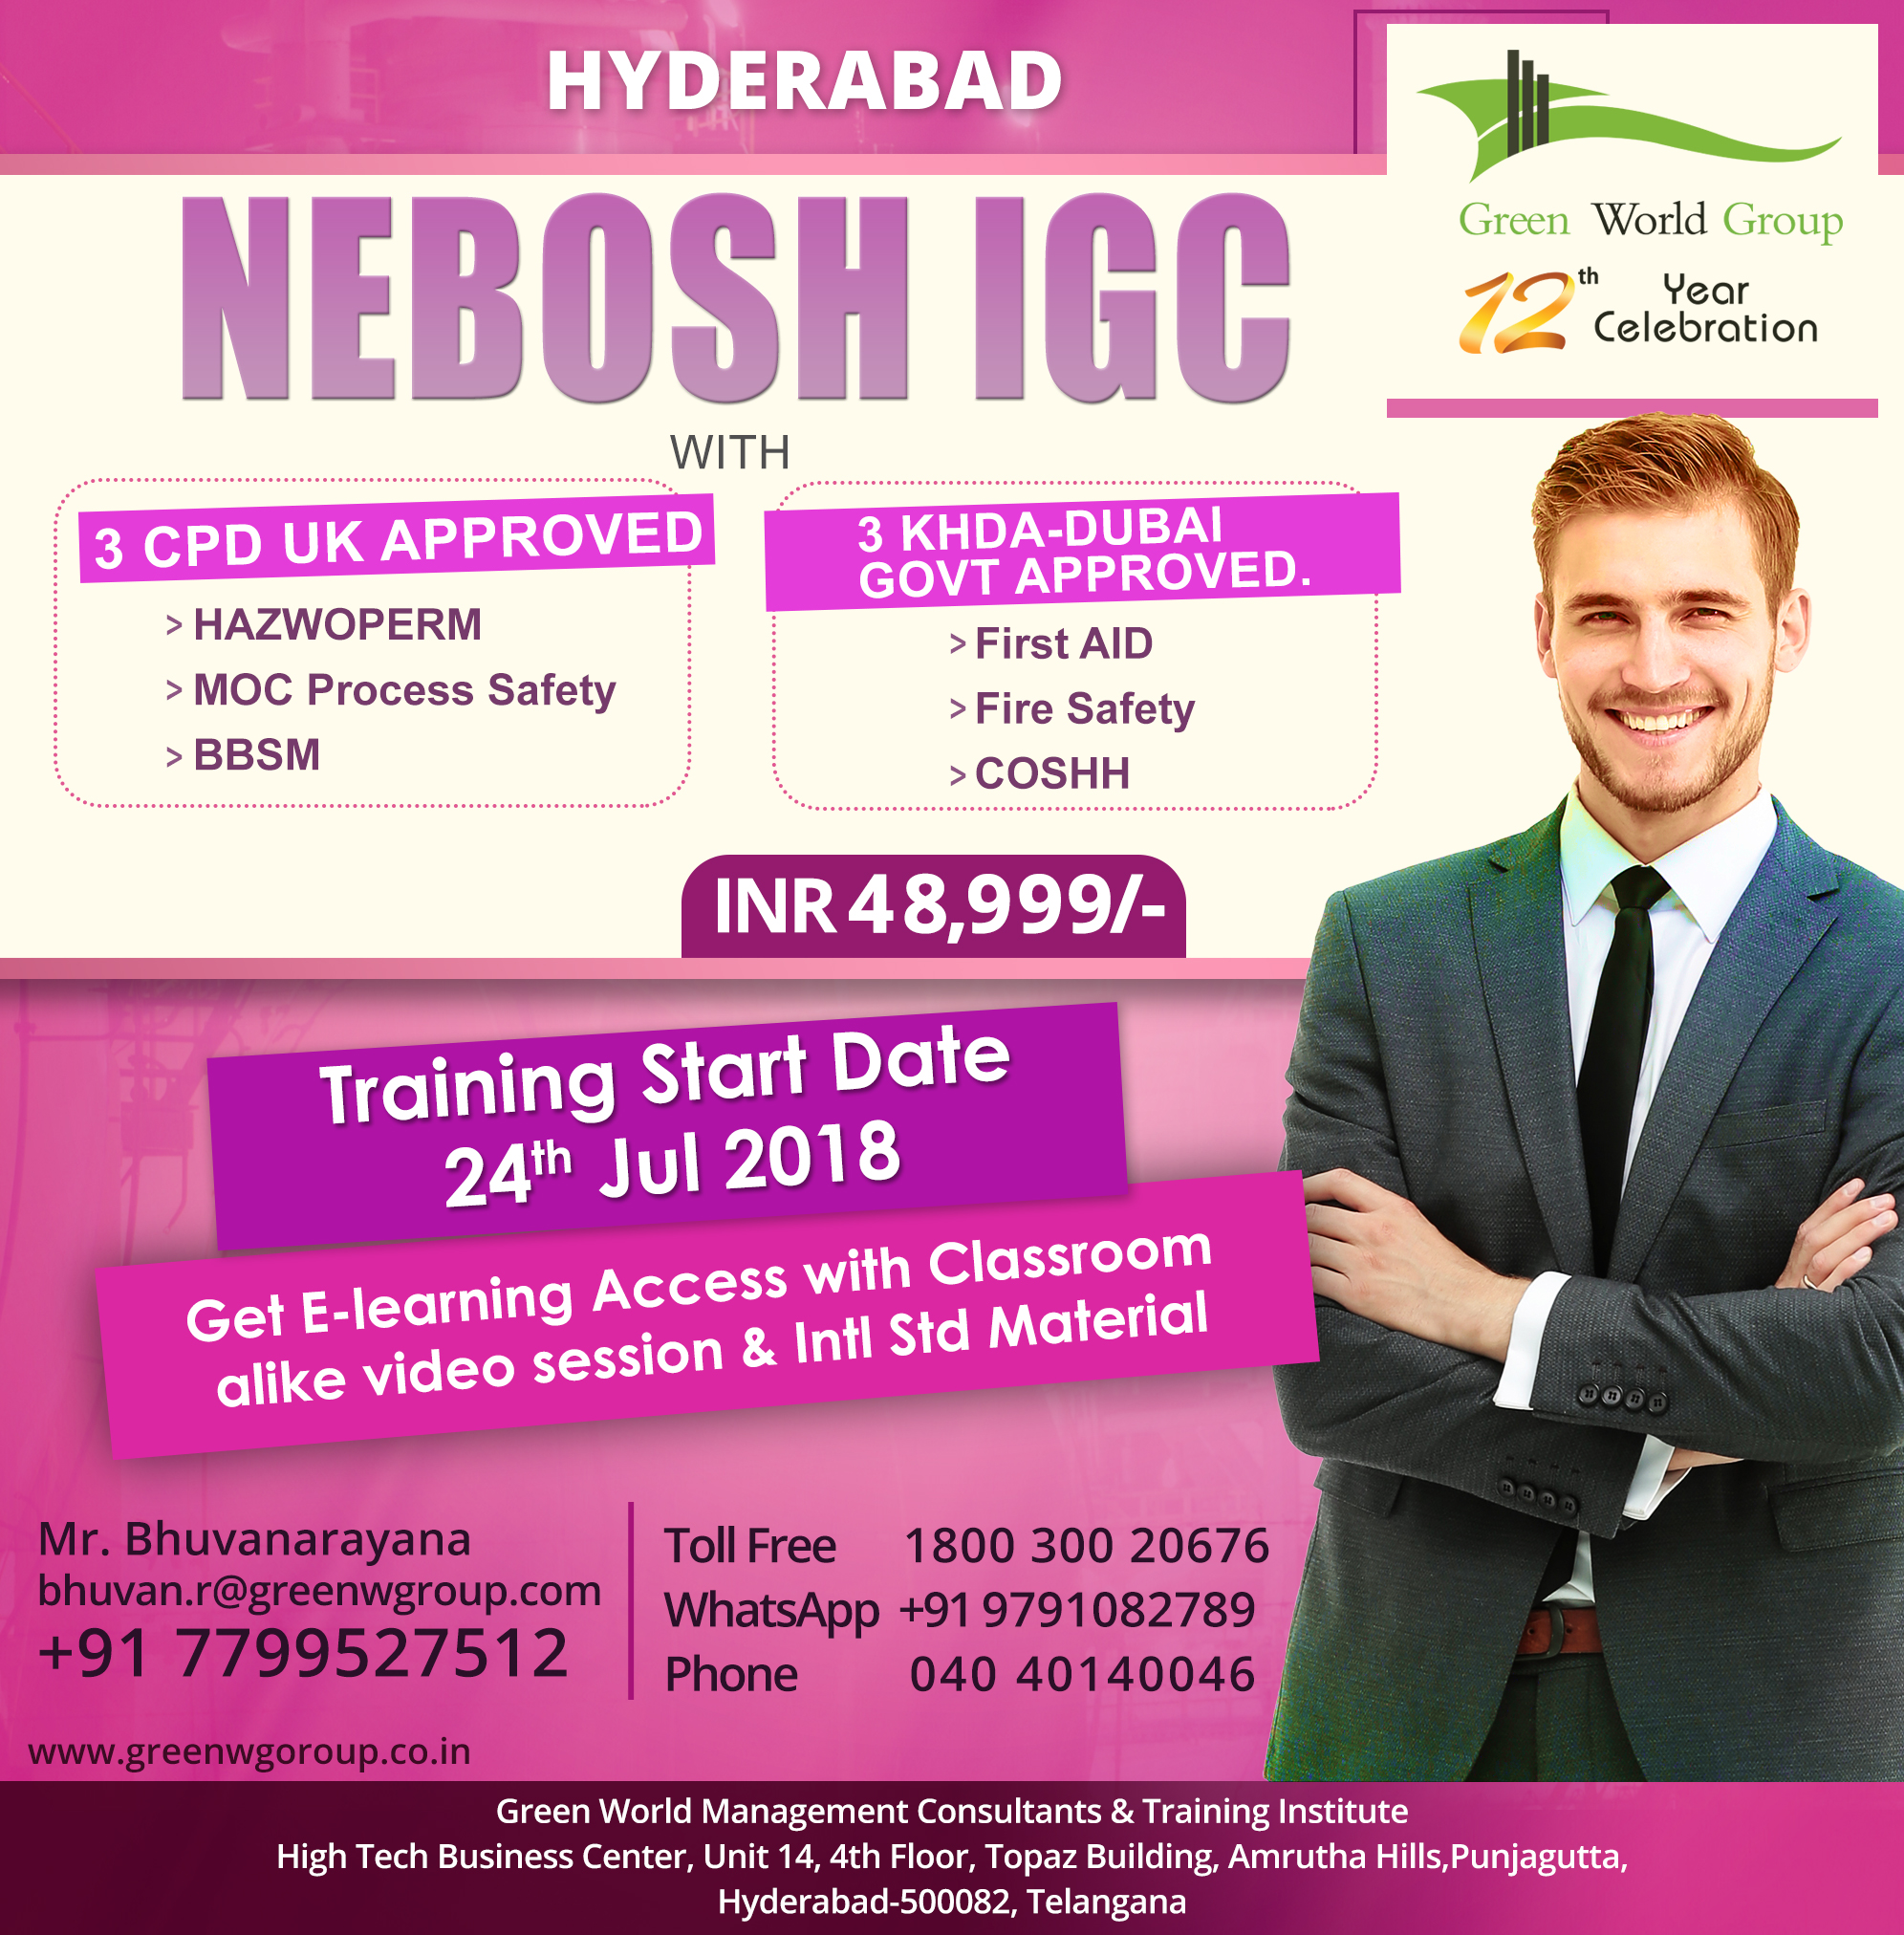 Gwg Offers For Nebosh Course In Hyderabad